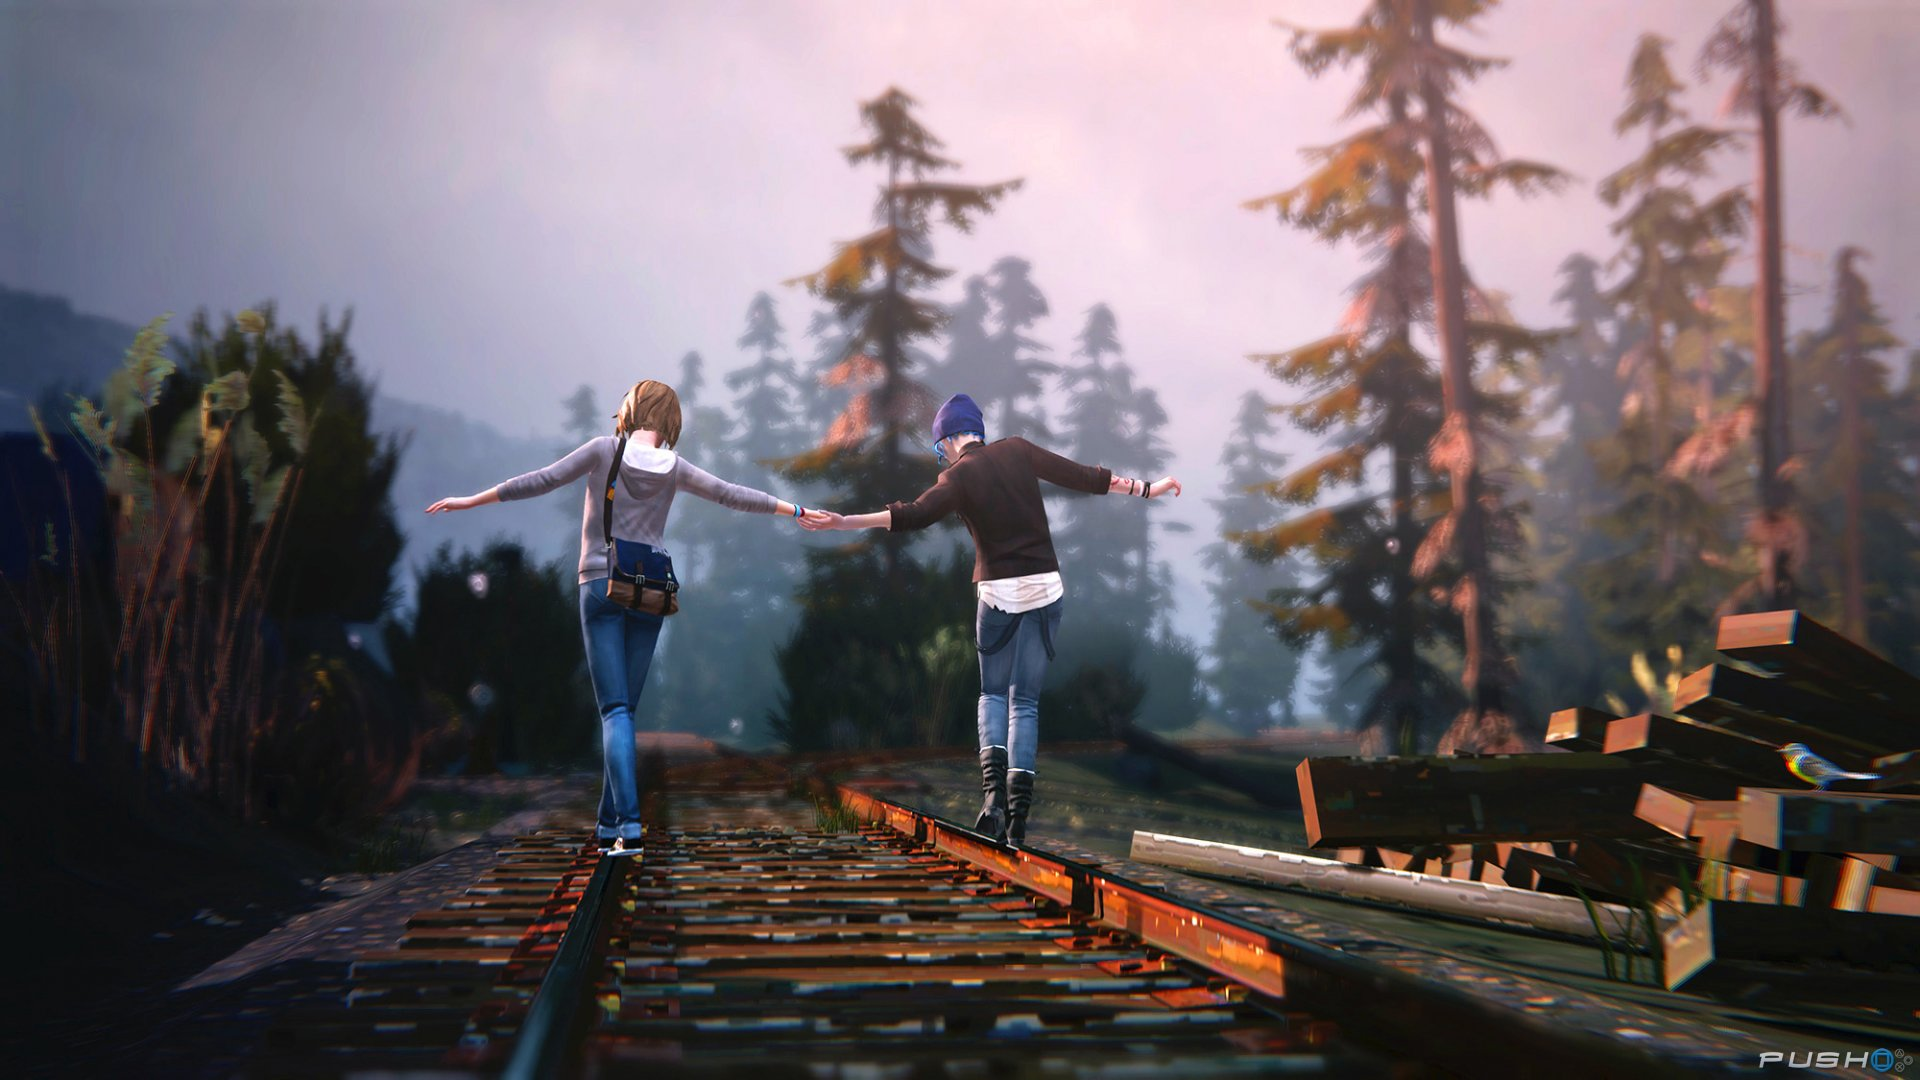 Max and Chloe walking on train tracks